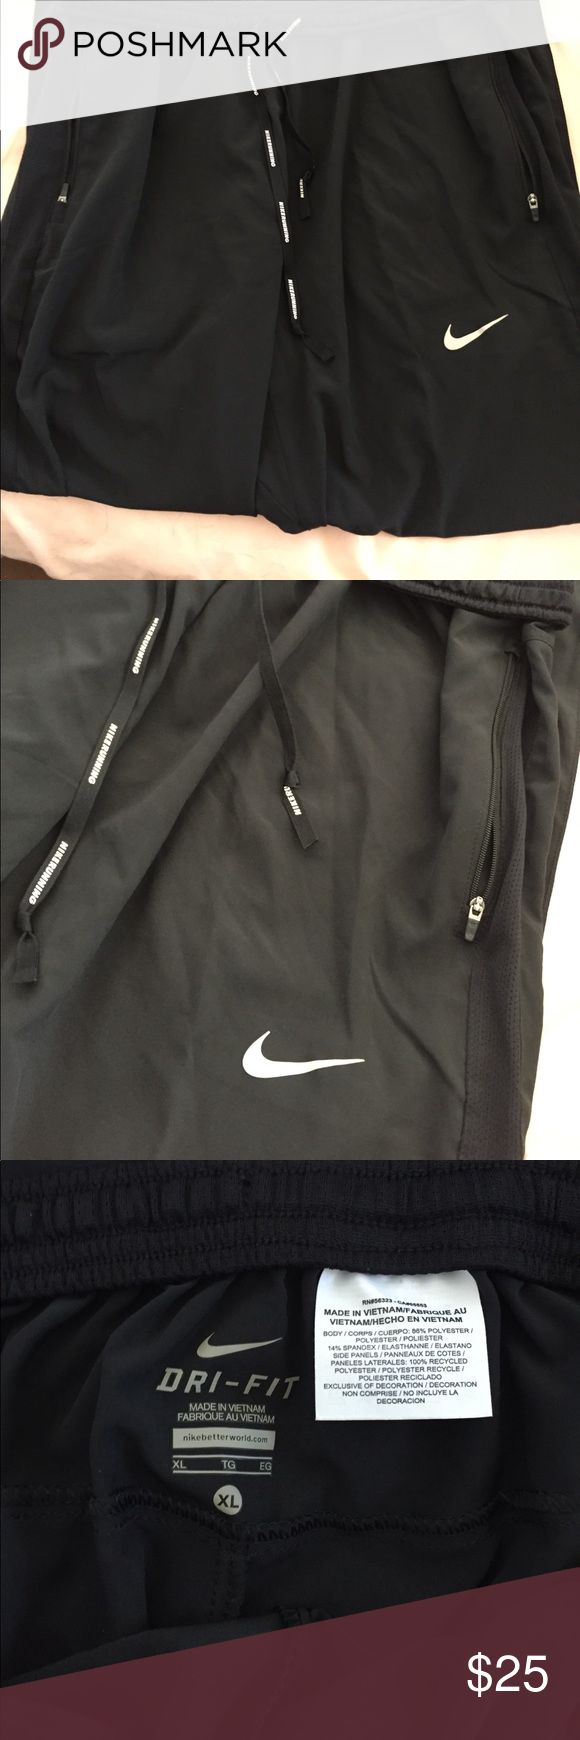 Nike running pants Lightweight material. Nike running pants with iconic Nike logo and drawstrings. Zippered pockets and partial zip up on the ankle Nike Pants Track Pants & Joggers